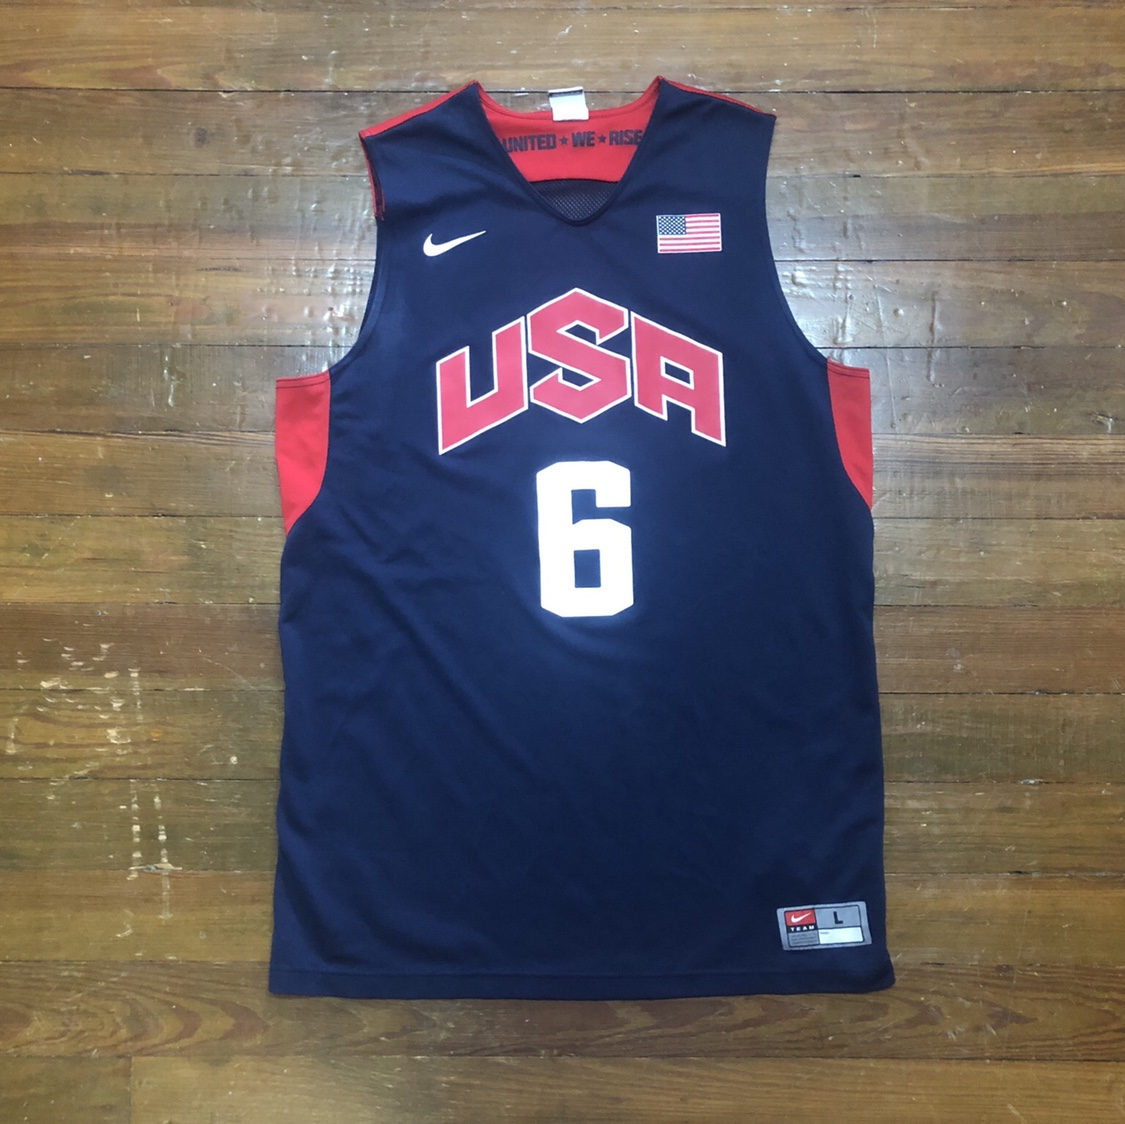 cheap for discount fae03 44abb Nike Lebron James USA jersey Actual... - Depop